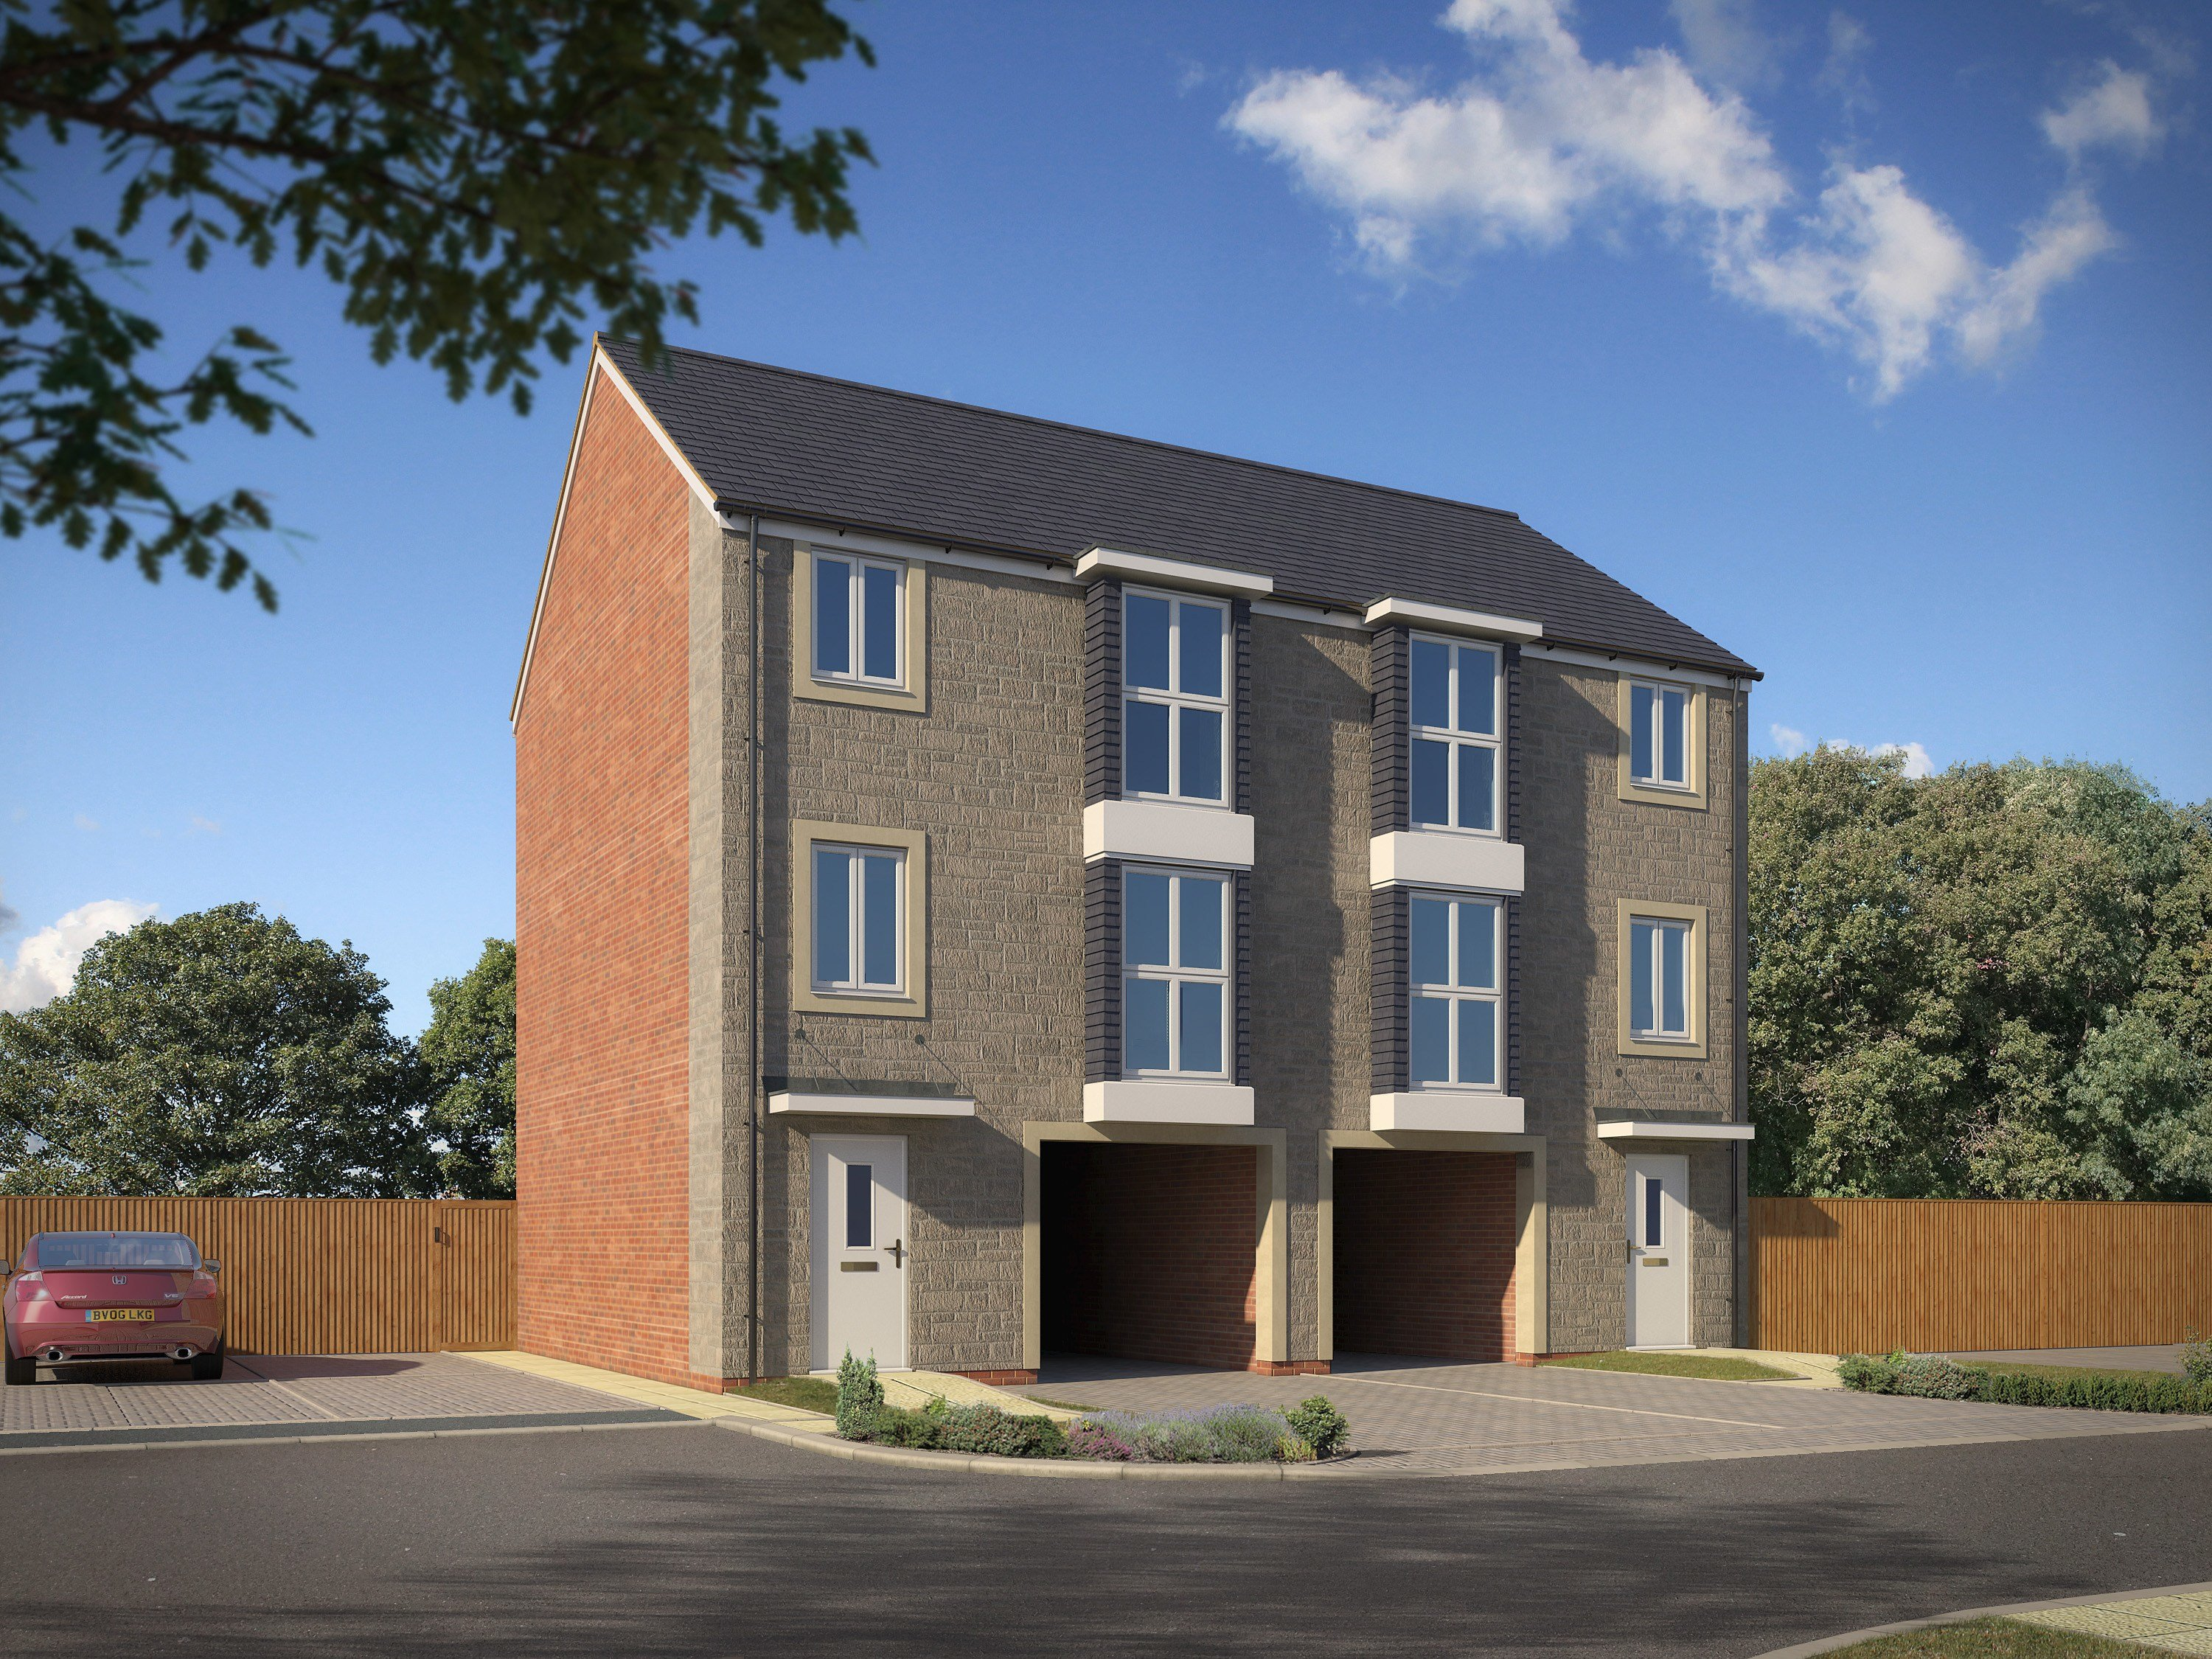 Best Homes For Sale In Weston Super Mare Somerset Bs24 8Pp With Pictures